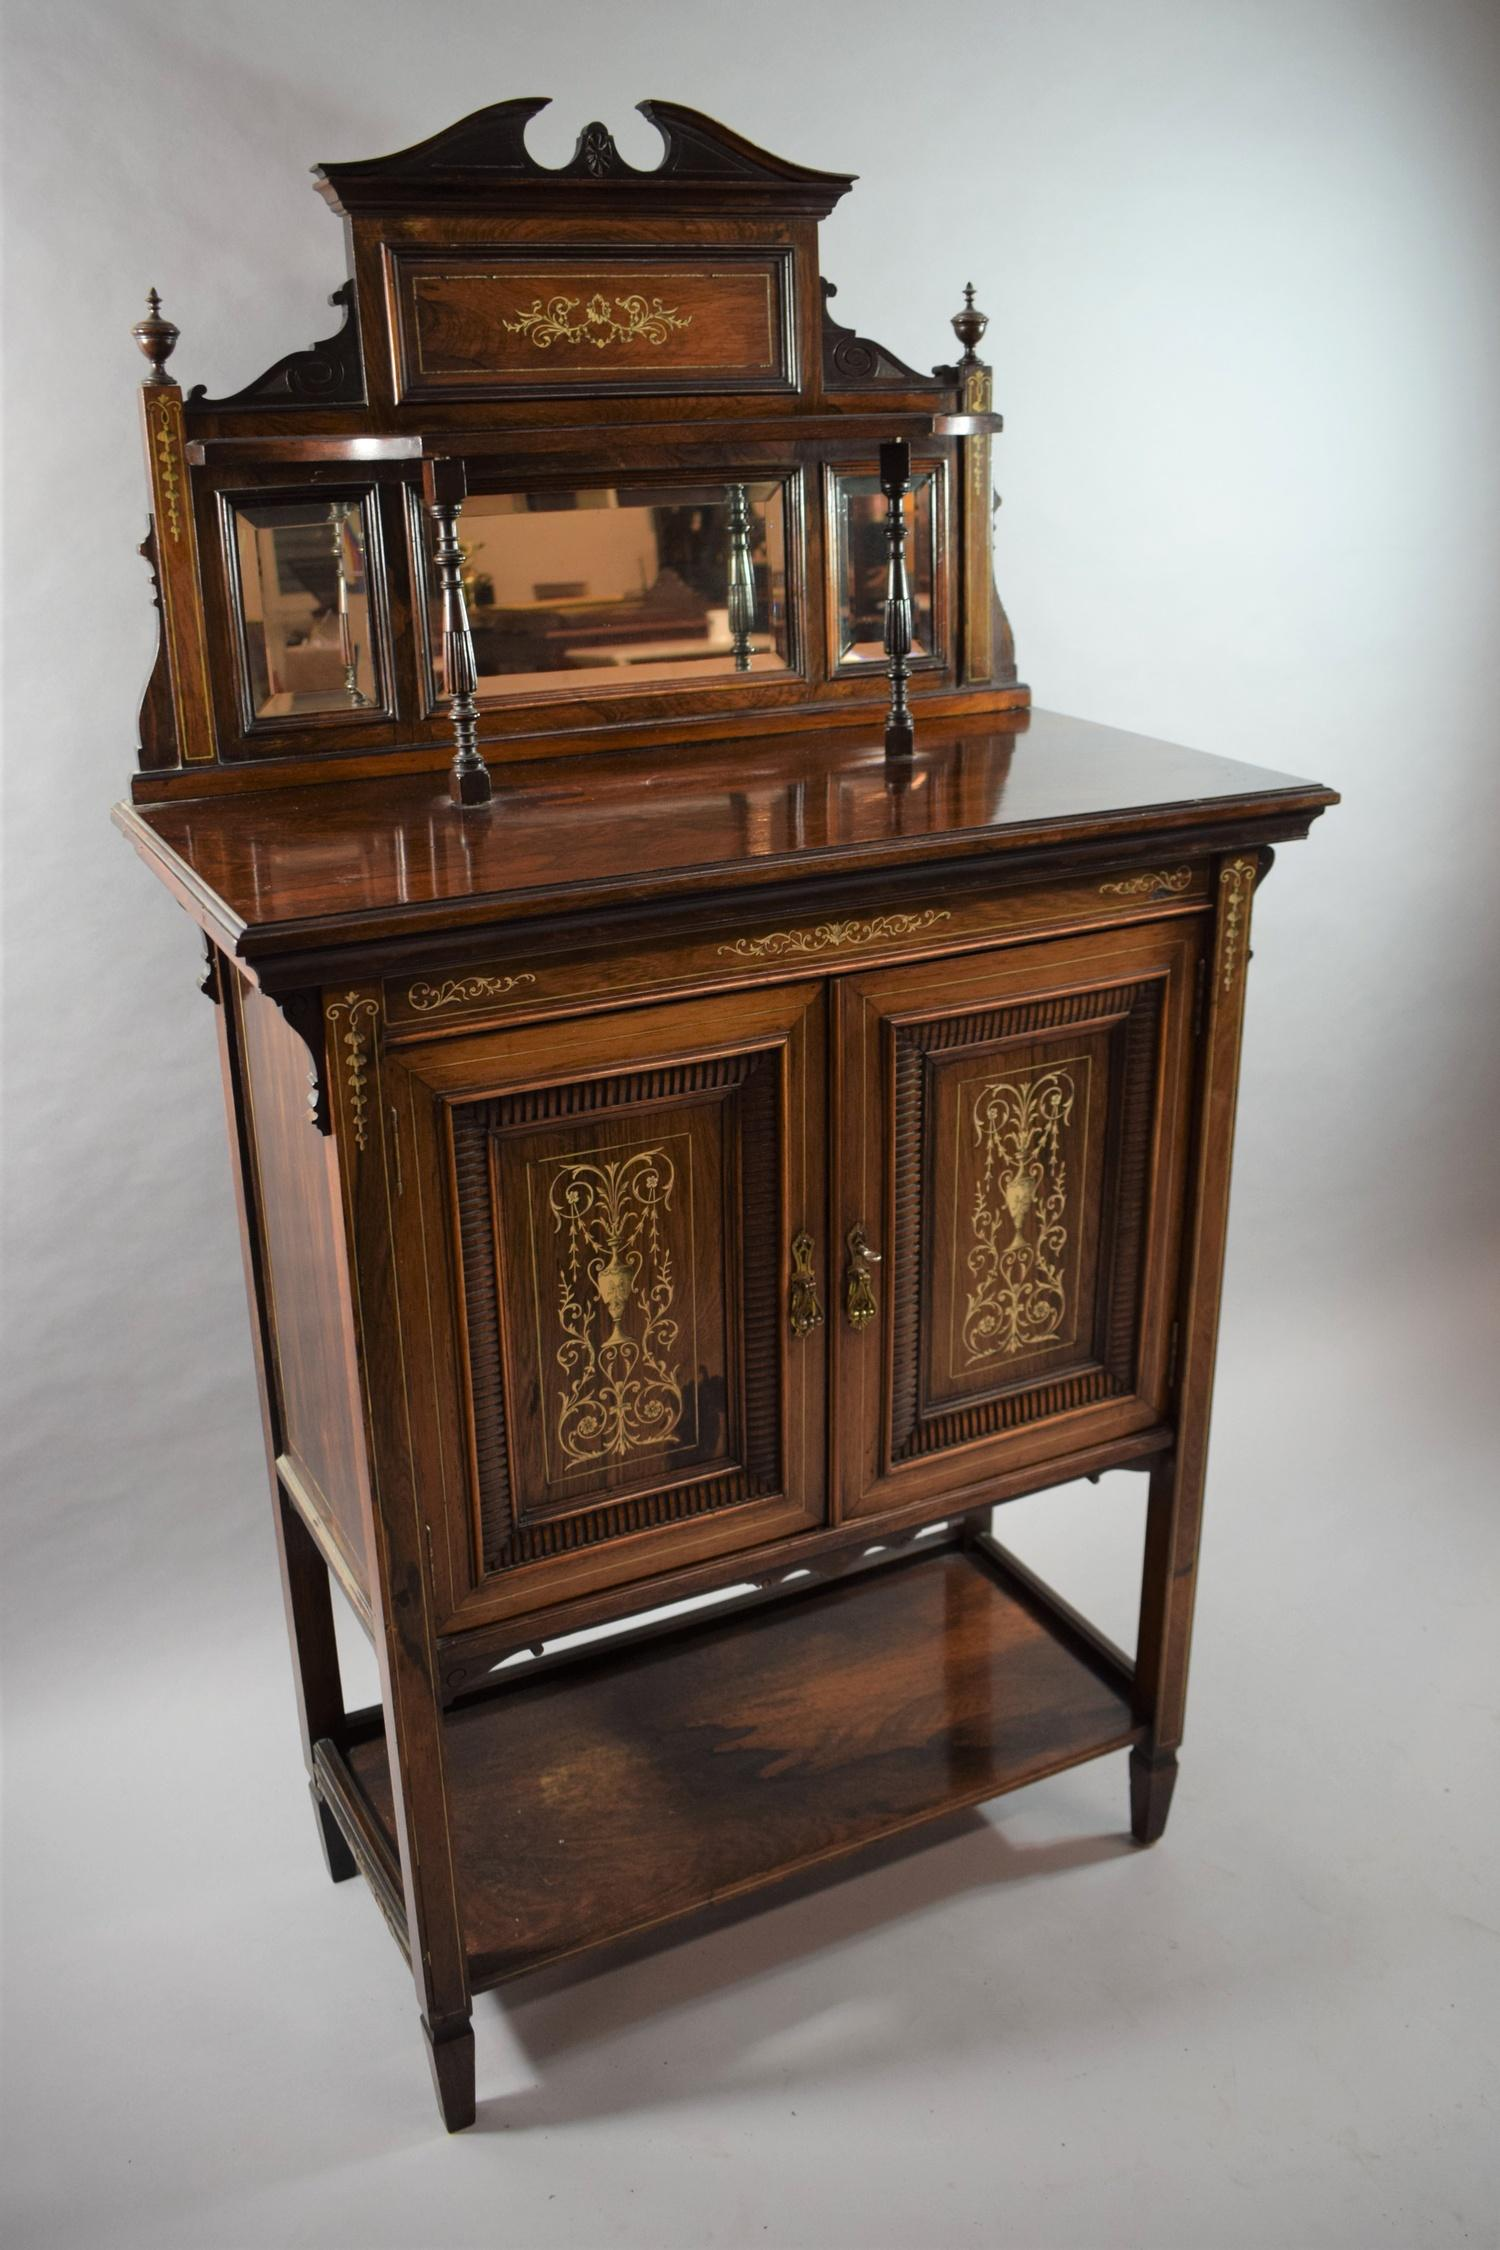 Lot 23 - A Late Victorian Edwardian Ivory Inlaid Rosewood Chiffonier Cabinet with Panelled Doors to Centre